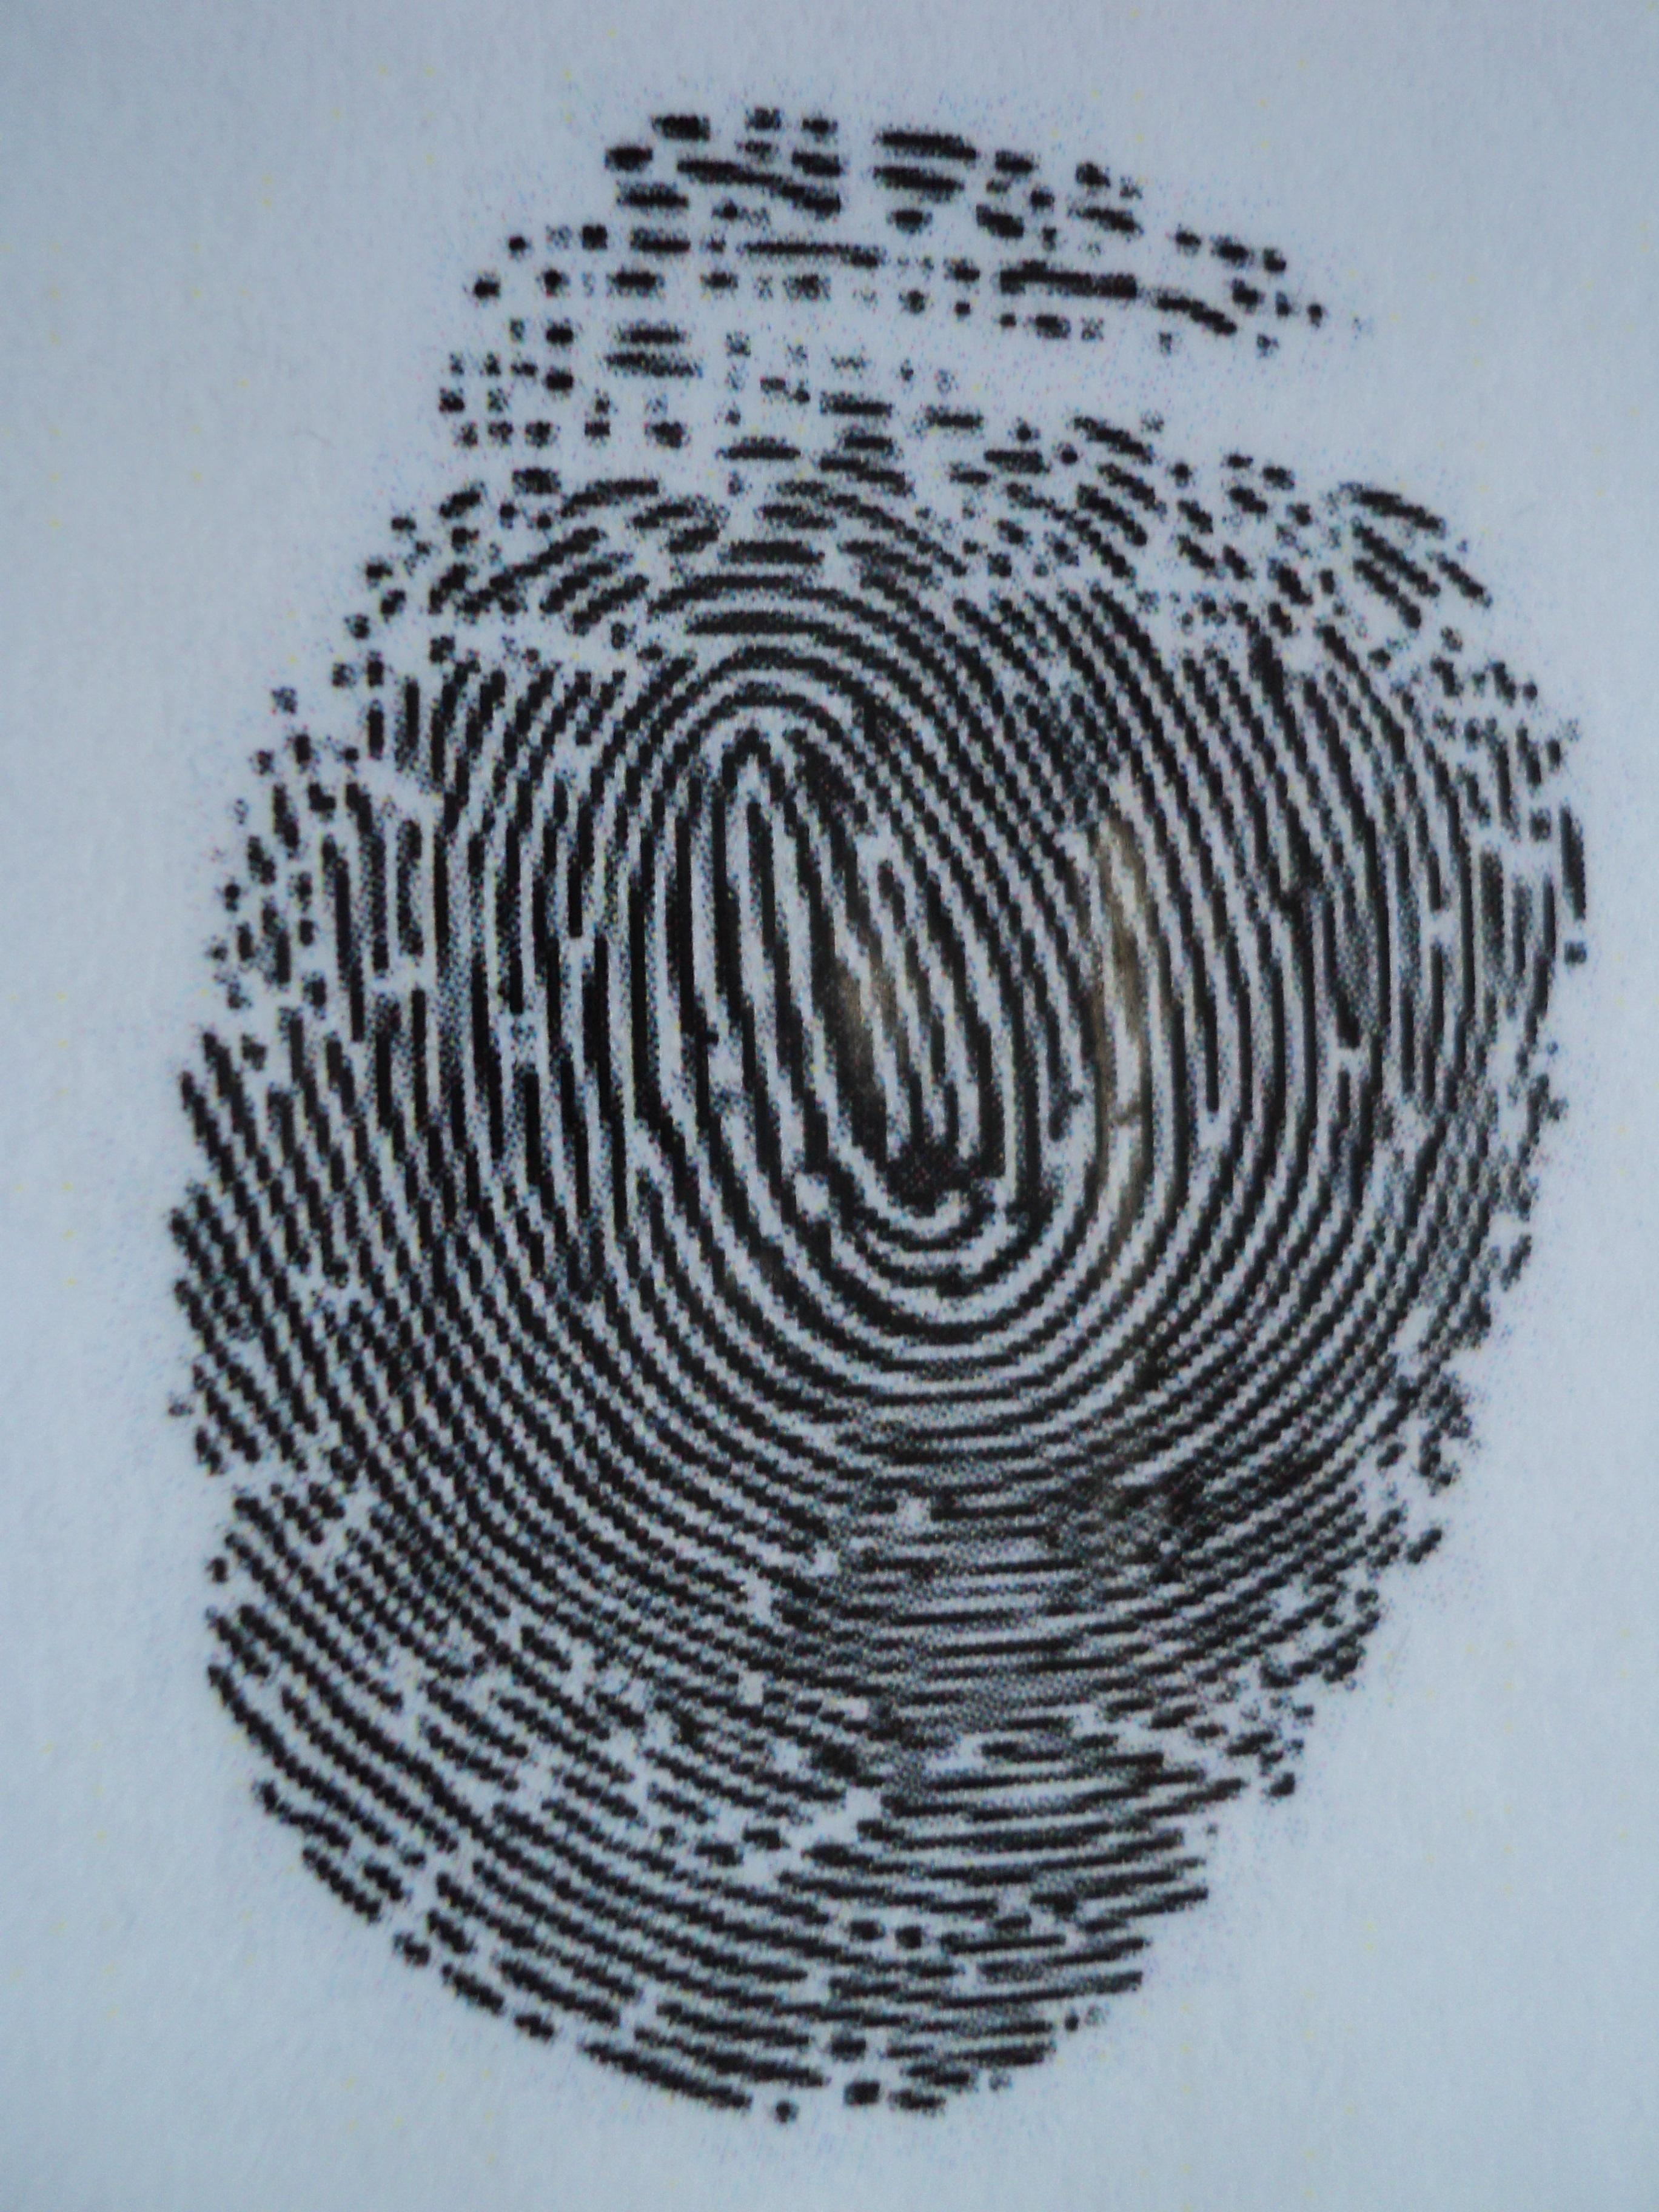 Anyone out there interested in a Forensics career?